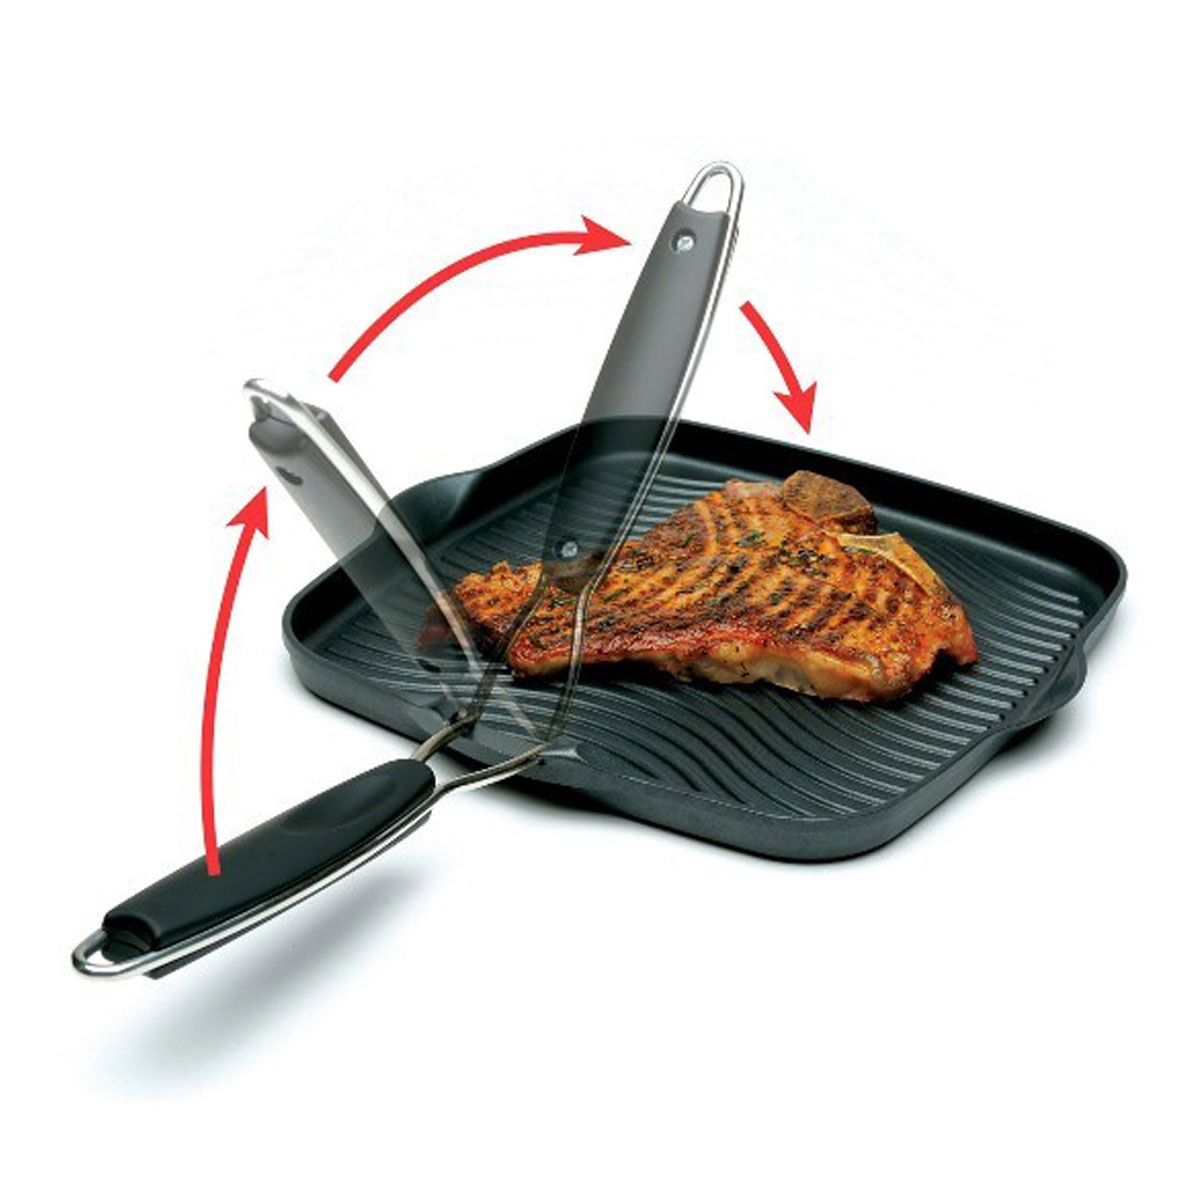 Starfrit Foldable Grill Pan